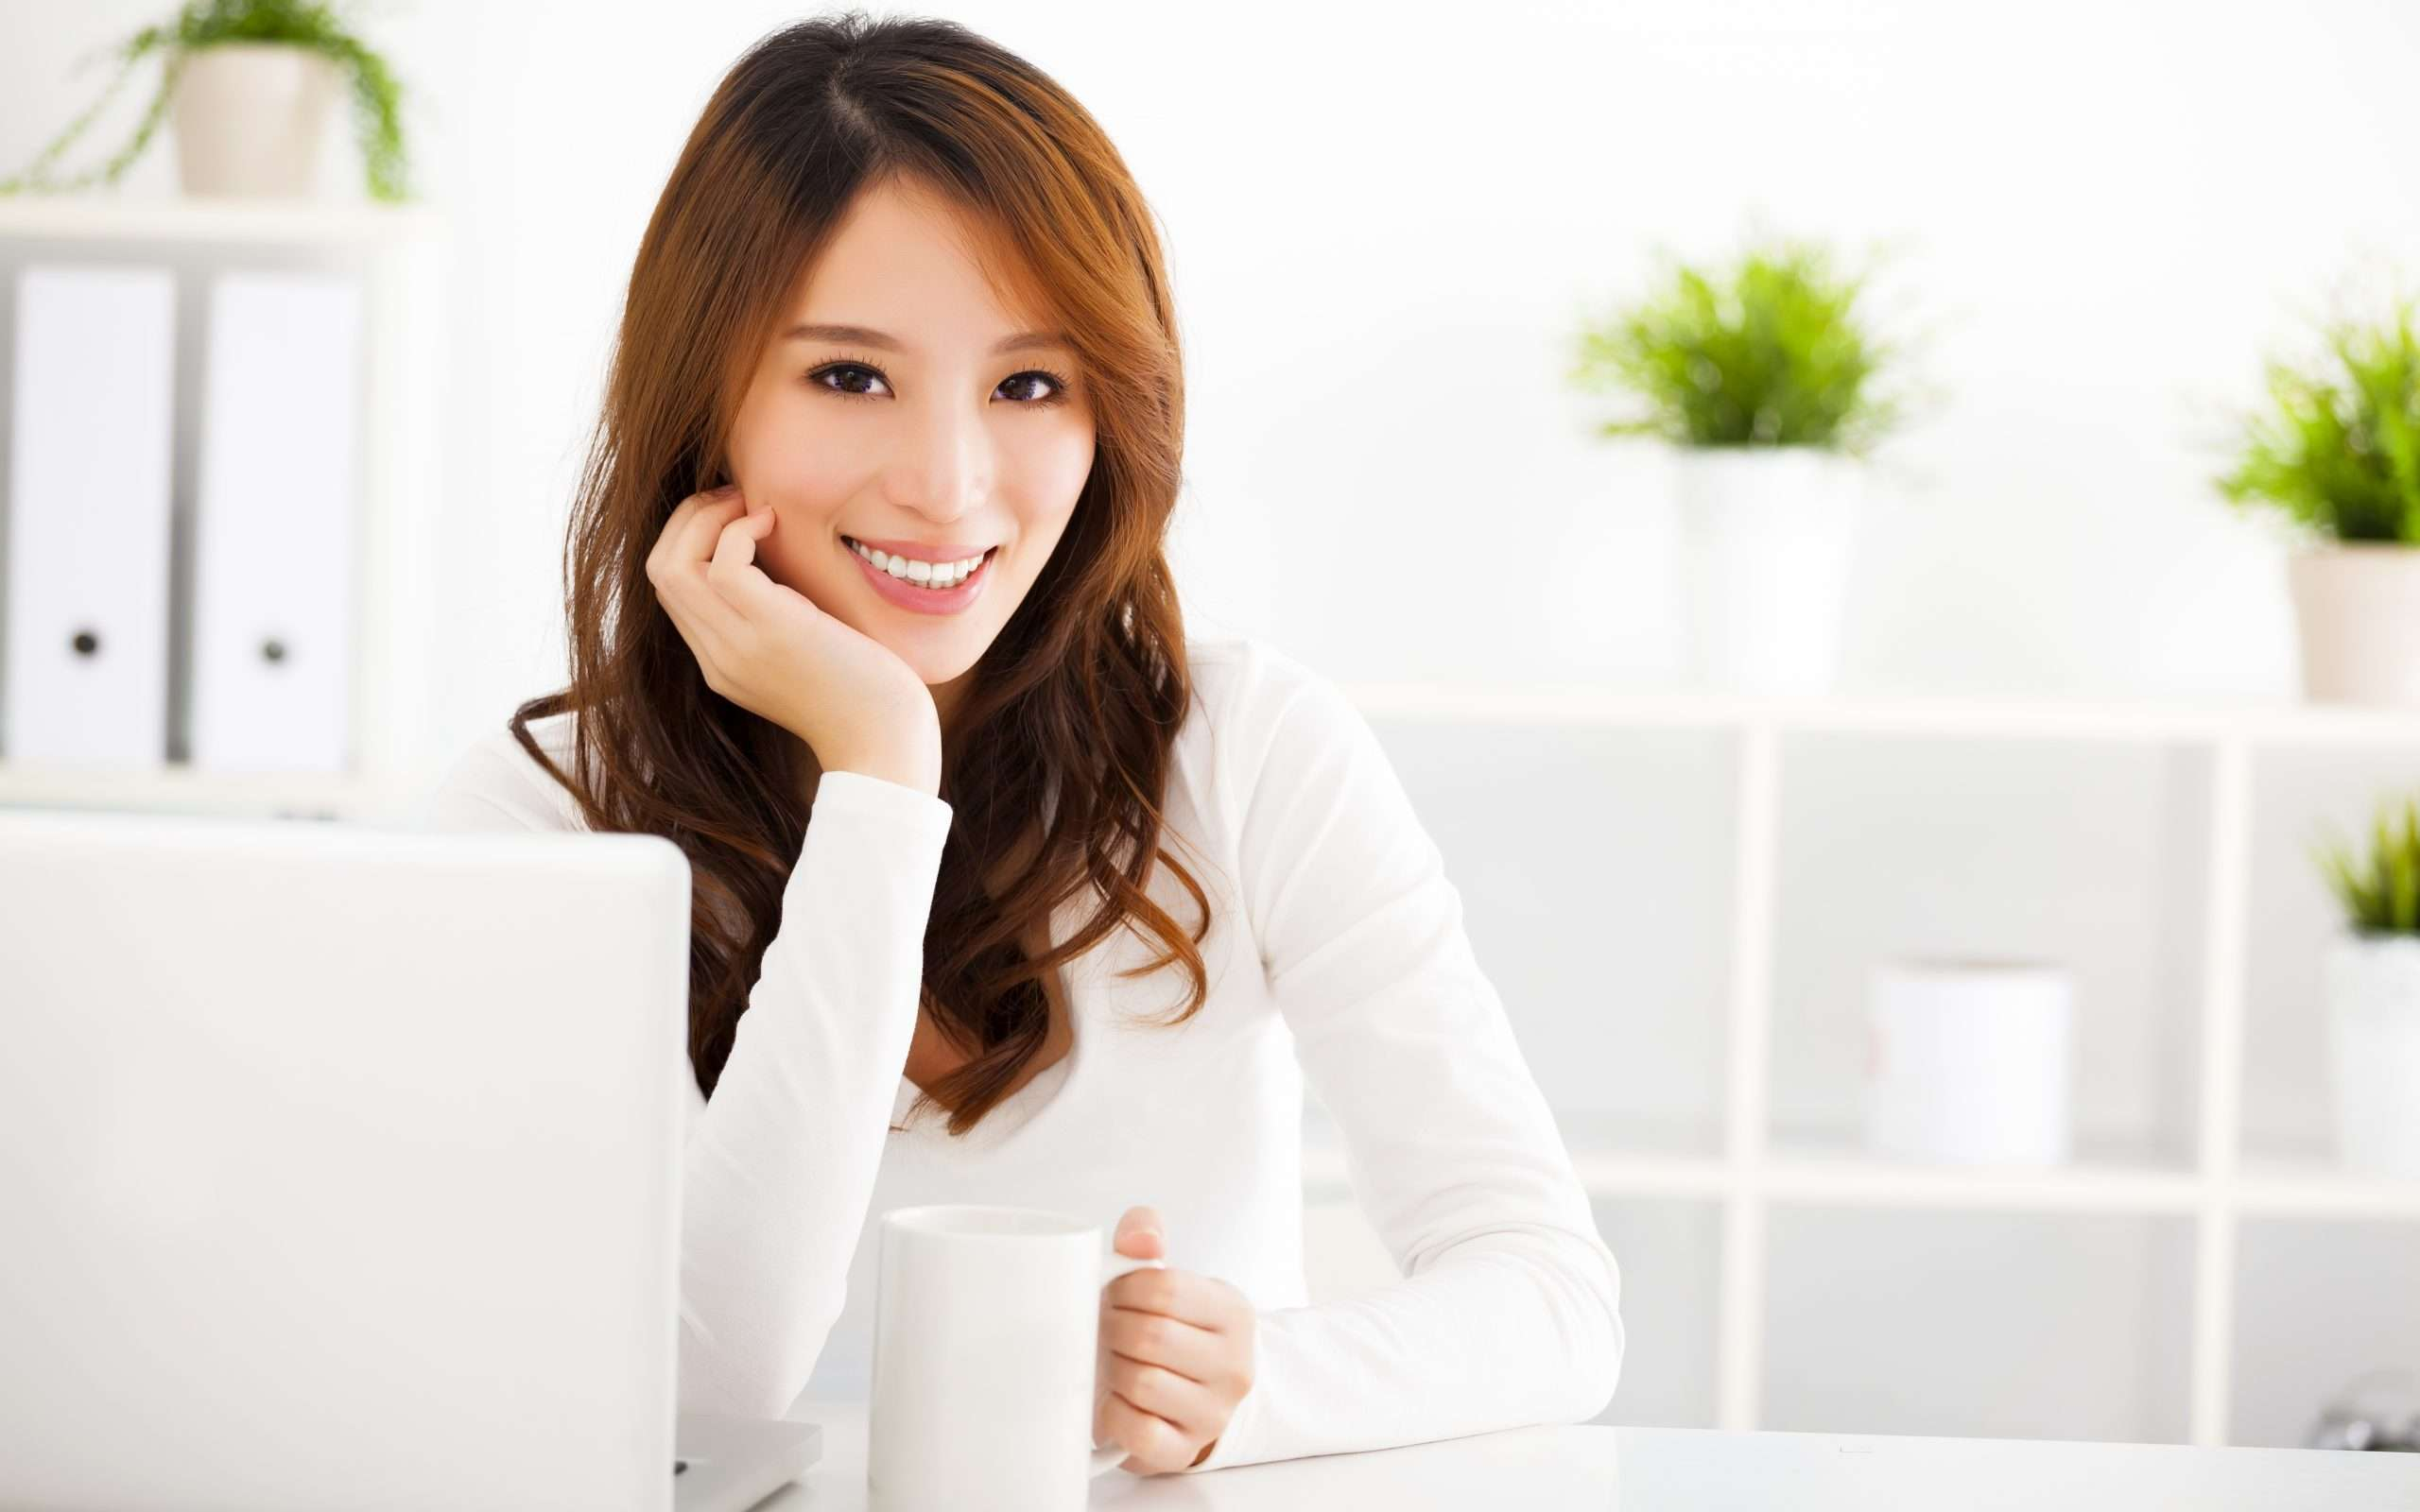 A professional sitting at a computer prepares to write a business plan.